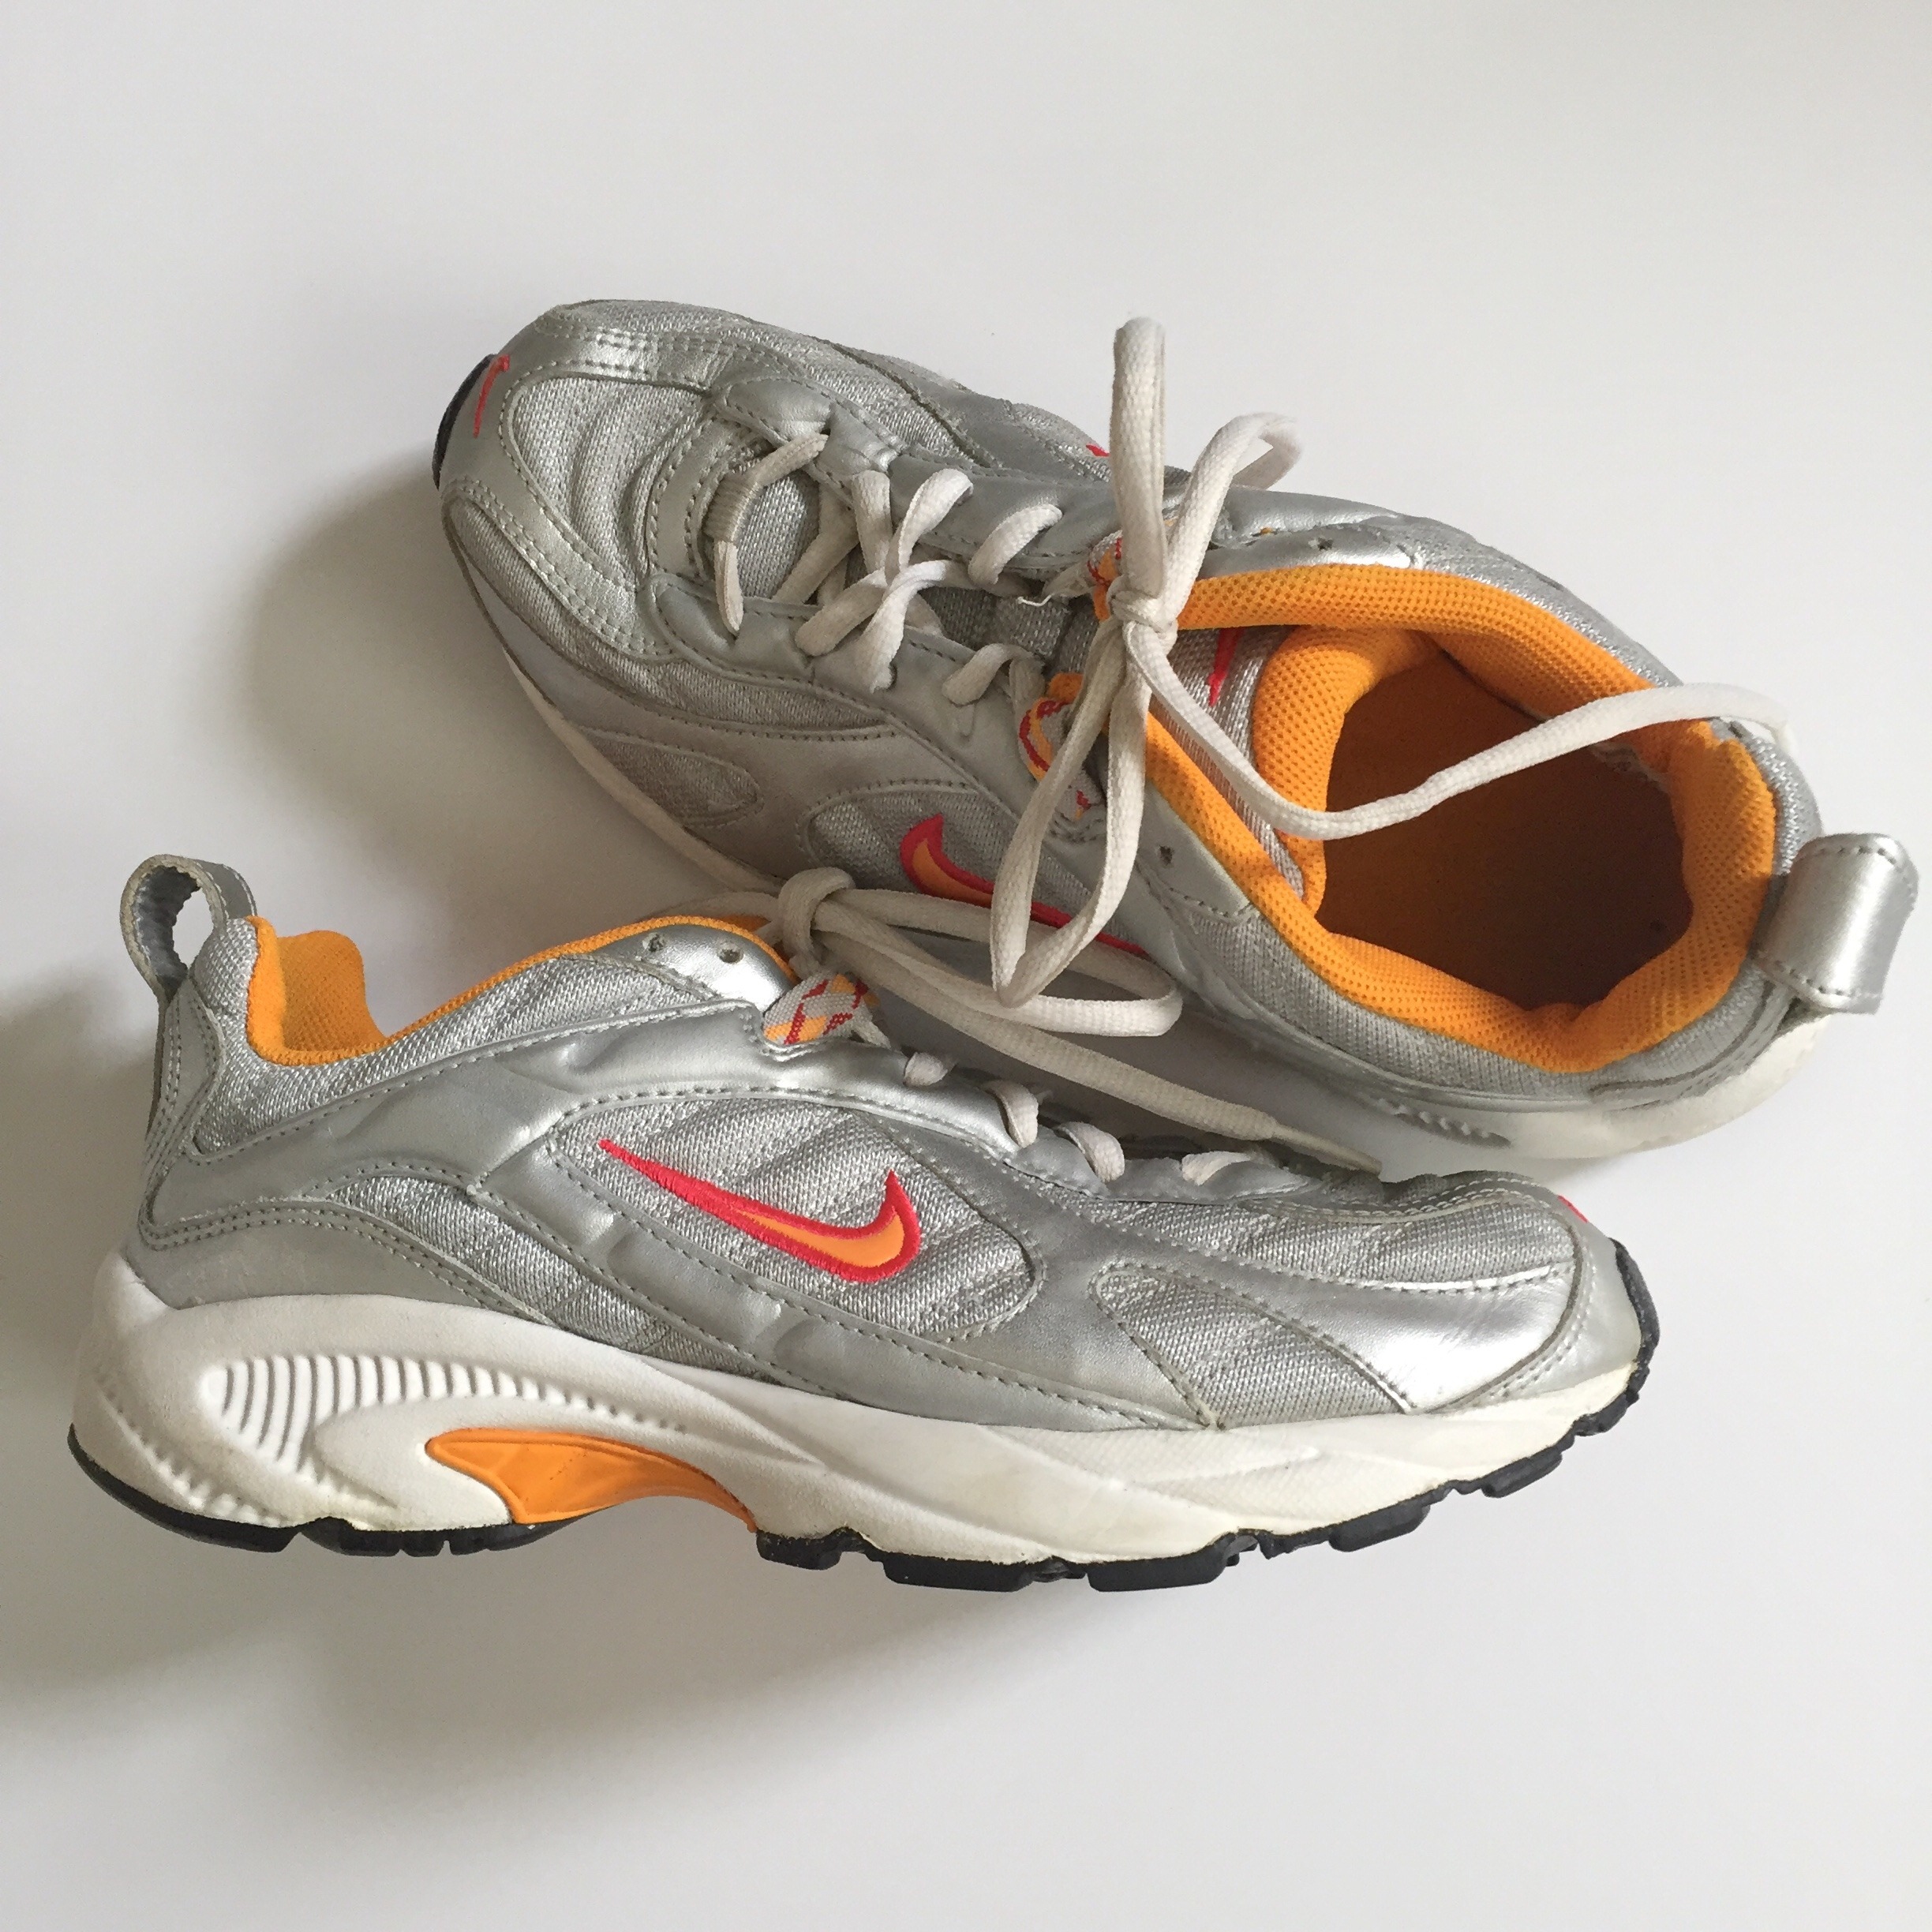 Older Nike dad/trainer shoes. In great